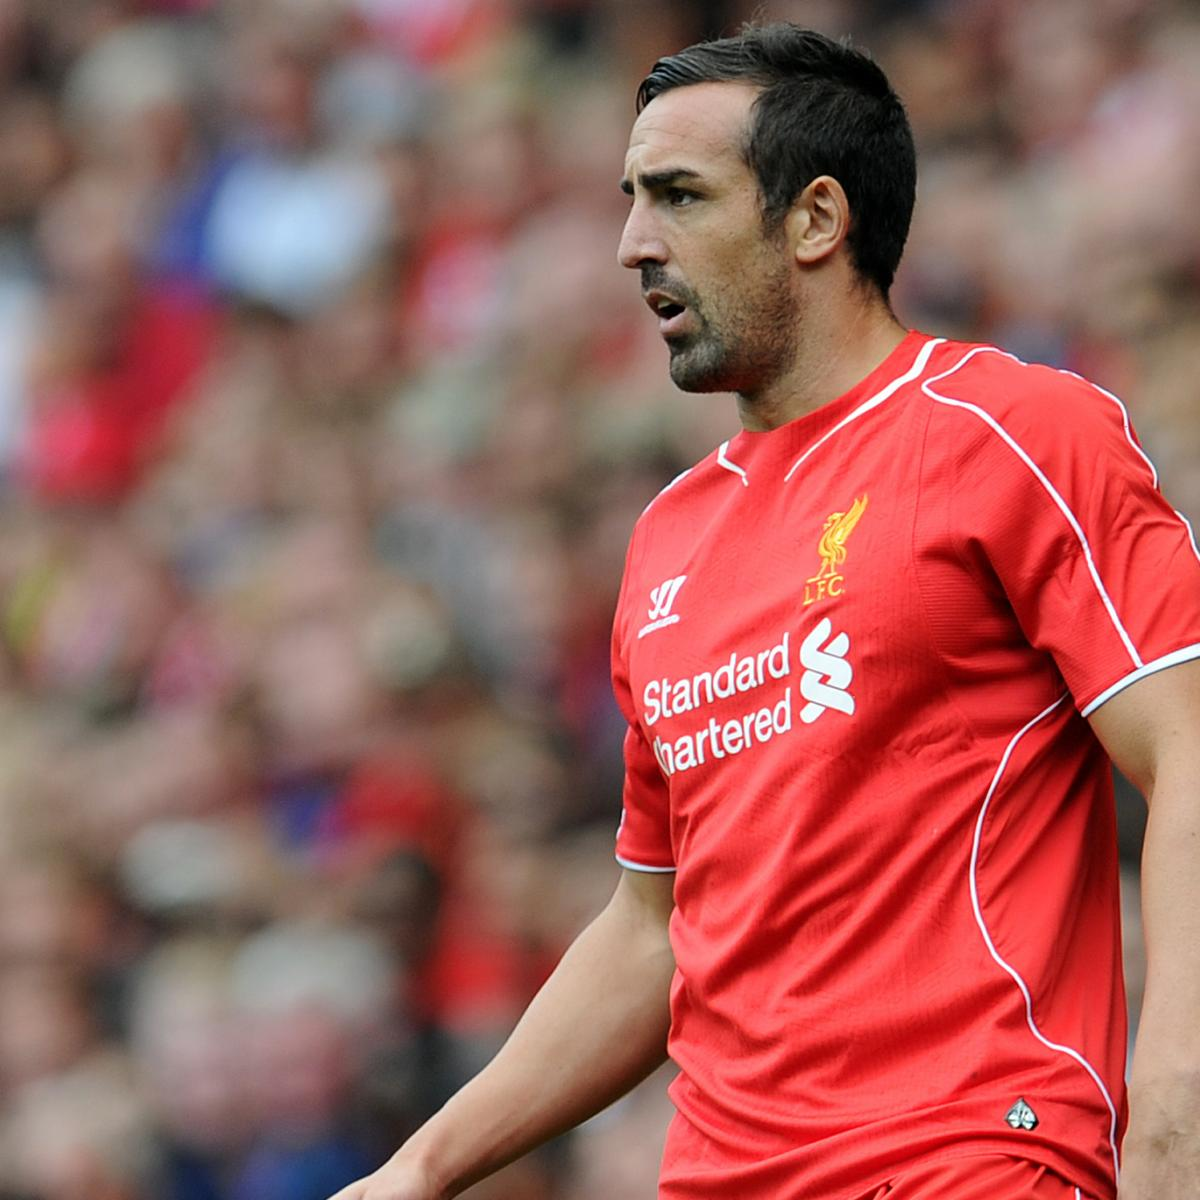 Former Liverpool Defender Jose Enrique Has Surgery to Remove Brain Tumour | Bleacher Report | Latest News, Videos and Highlights